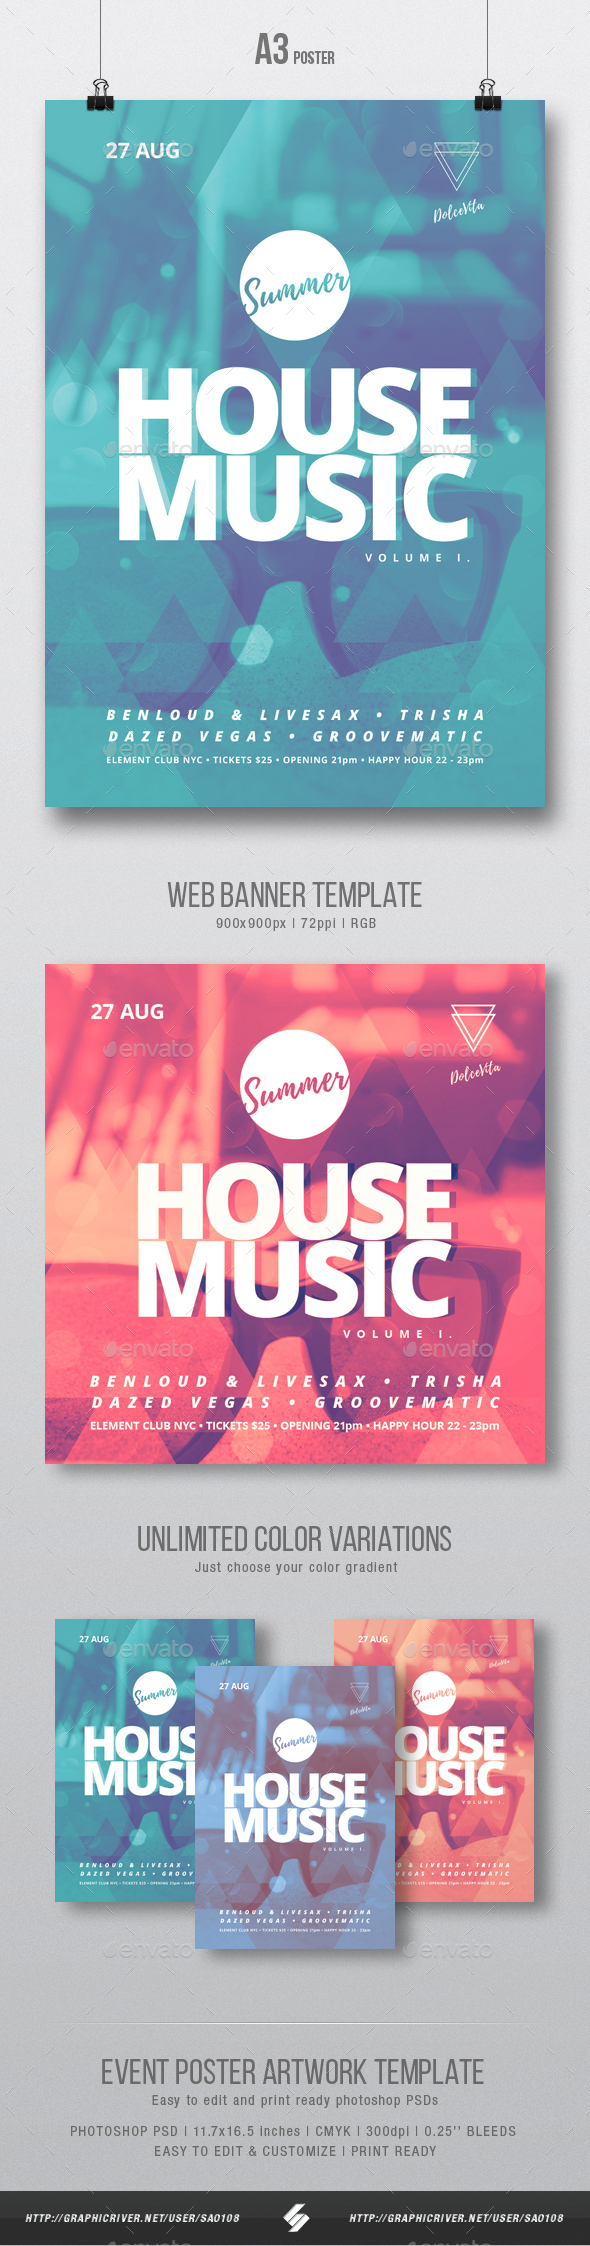 Summer House Music - Flyer / Poster Template A3 - Clubs & Parties Events